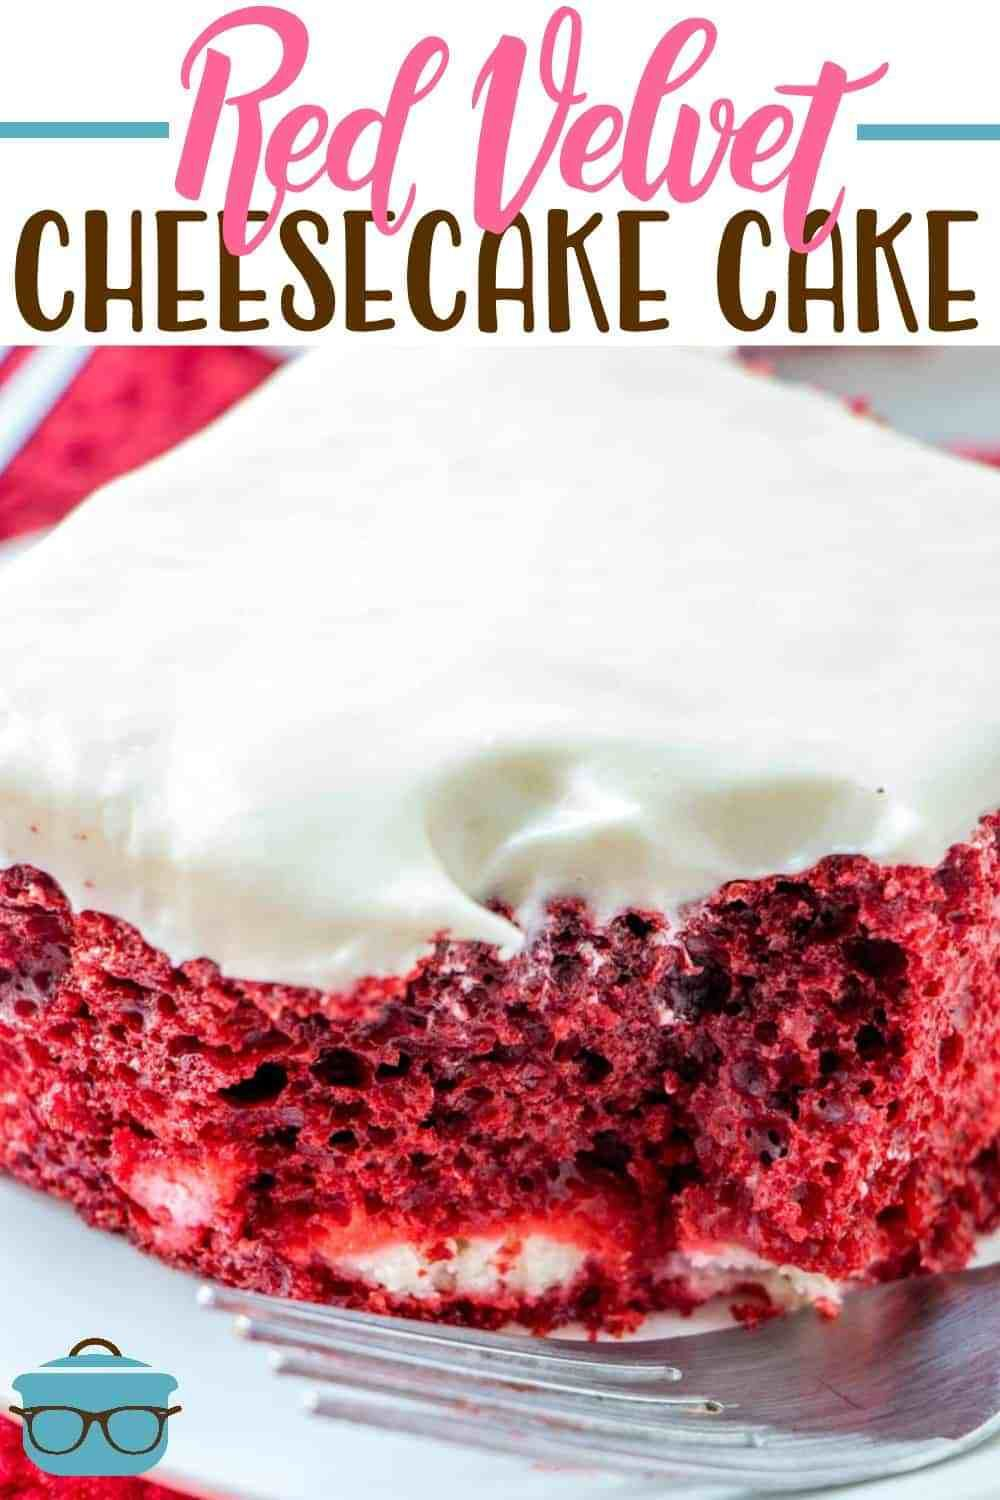 Red velvet cheesecake cake #redvelvetcheesecake